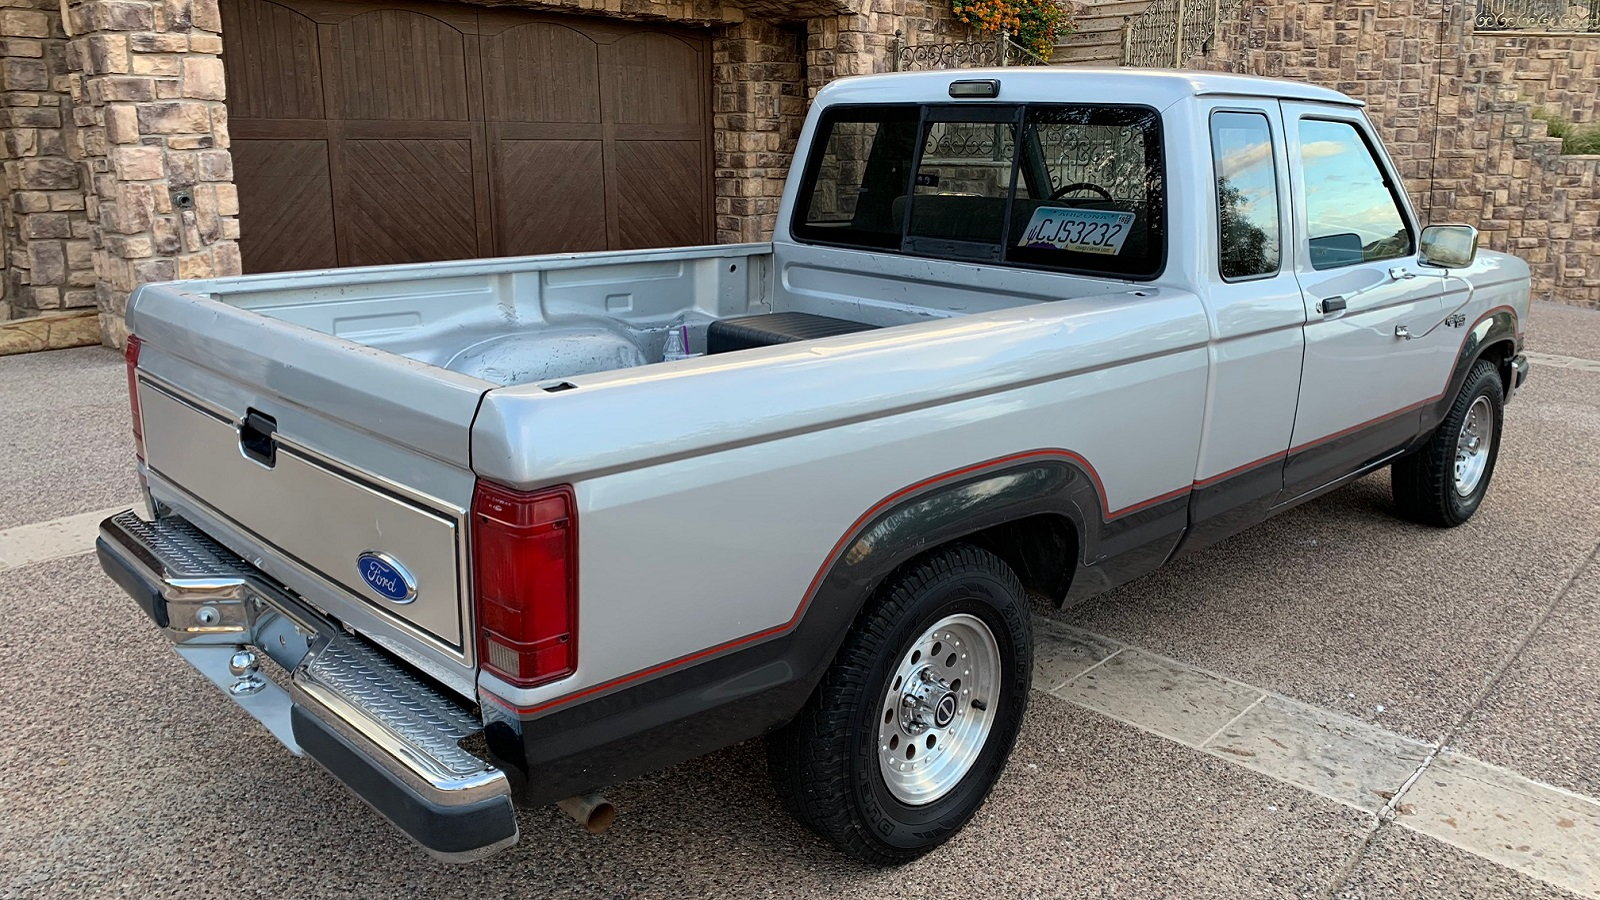 Incredibly Clean 1990 Ford Ranger Is a Compact Survivor